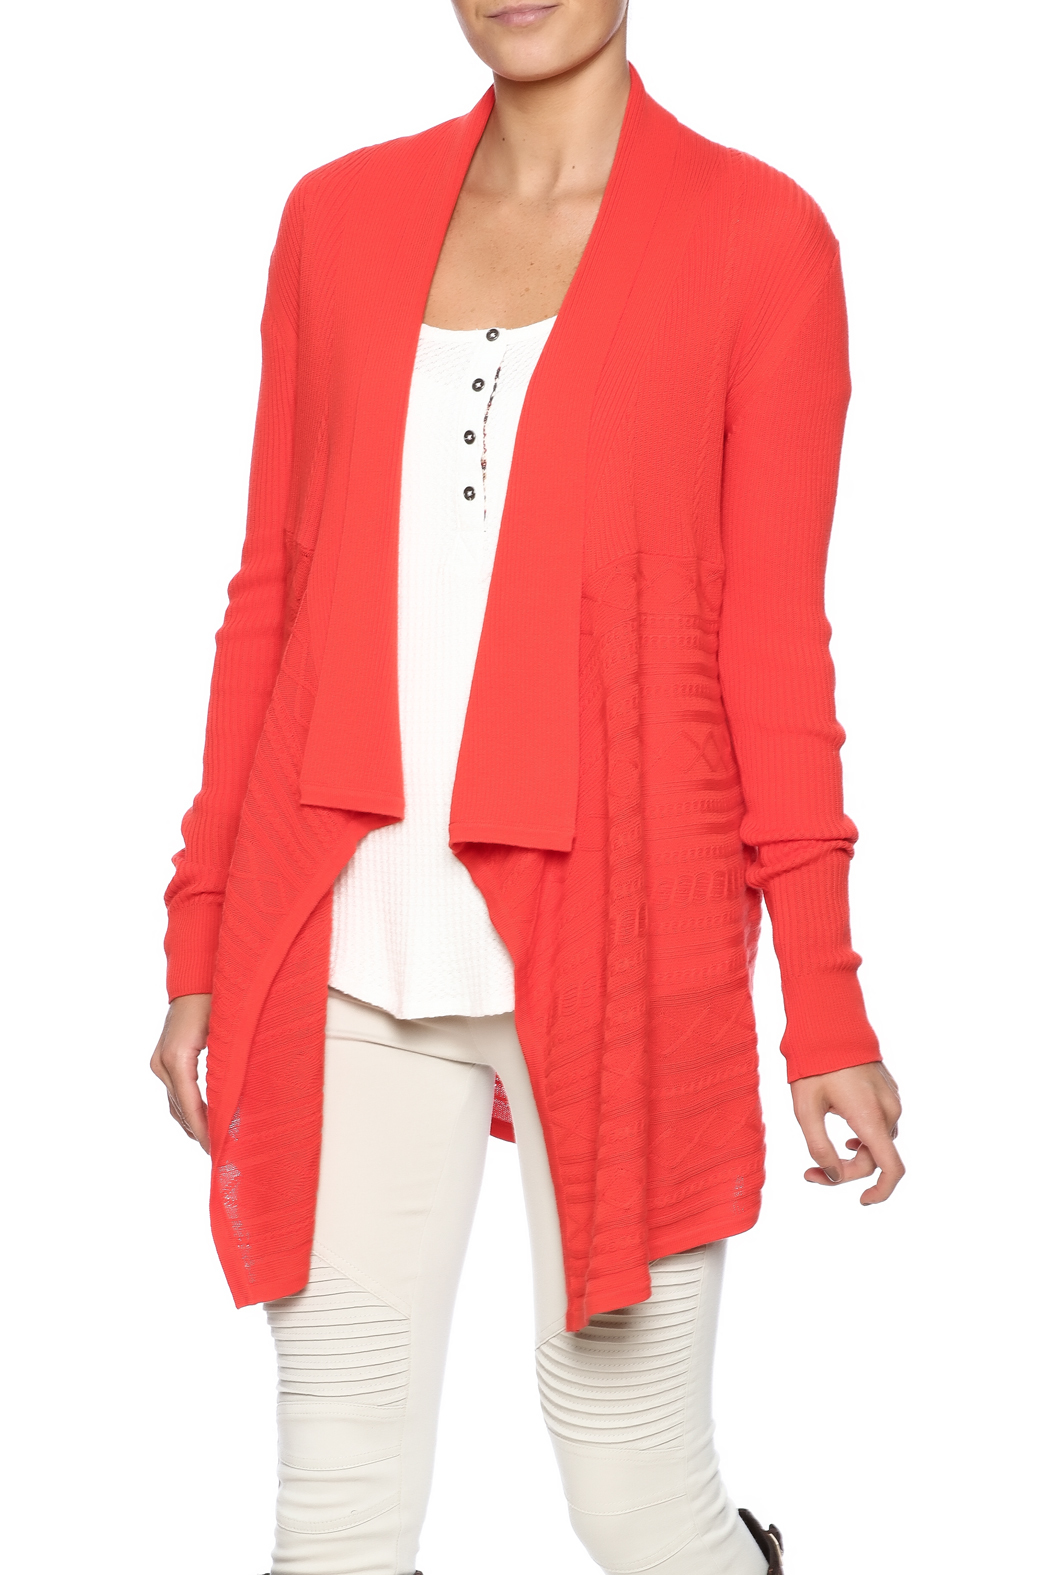 Julie Brown NYC Jolie Open Cardigan from Pennsylvania by Quelque ...